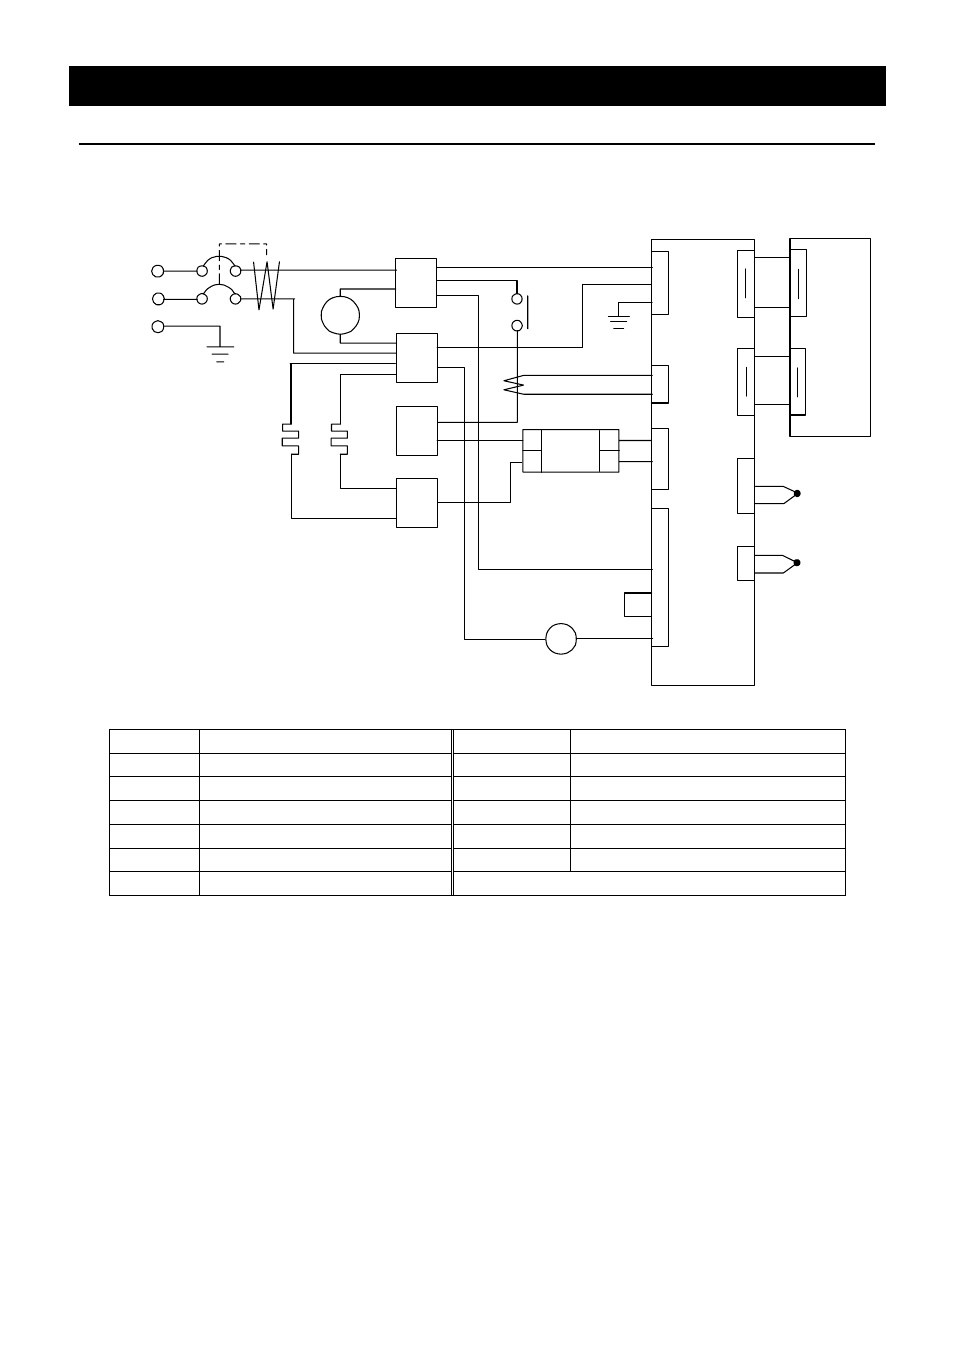 Wiring Diagram Yamato Scientific Dkn 912 Constant Temperature H1 Drying Oven User Manual Page 46 50